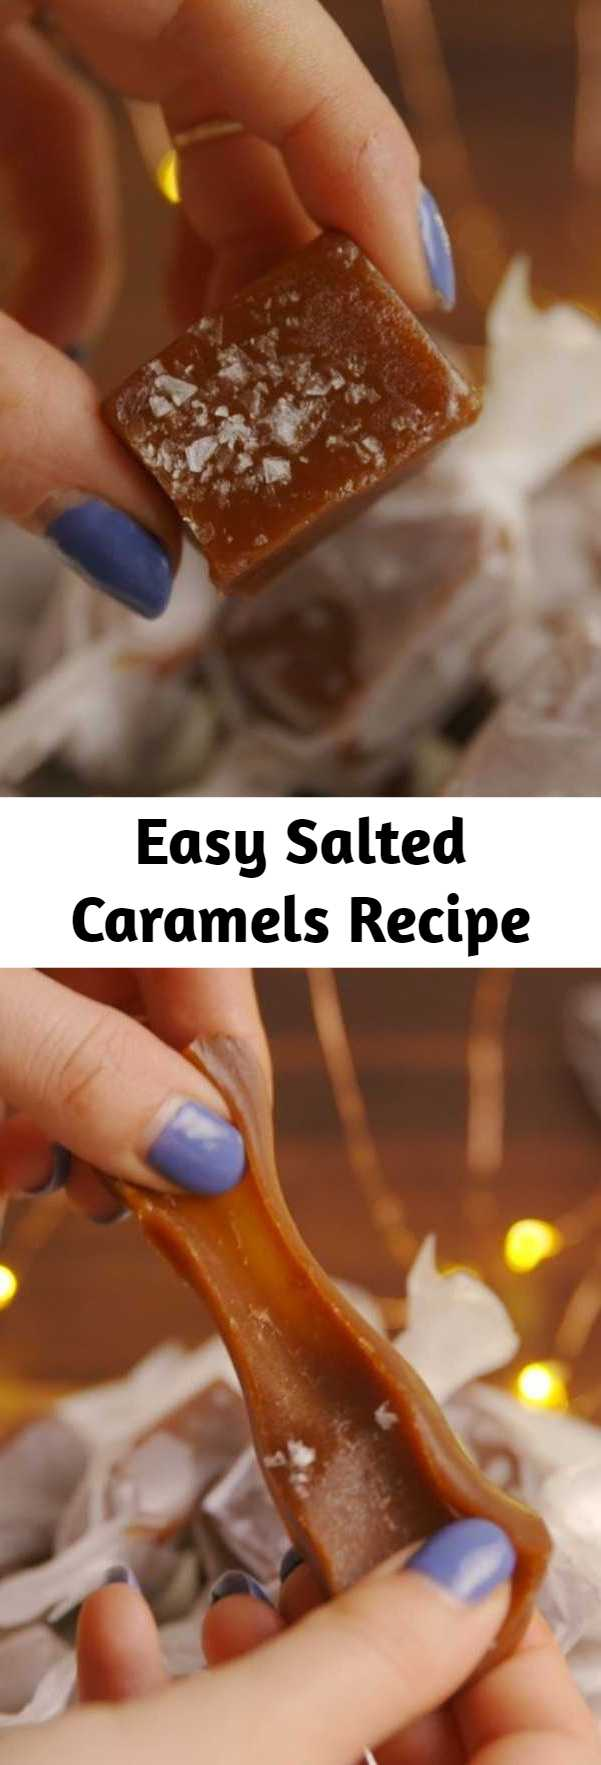 Easy Salted Caramels Recipe - Gift Salted Caramels and be forever loved. #food #pastryporn #holiday #christmas #easyrecipe #recipe #gifts #wishlist #ideas #inspiration